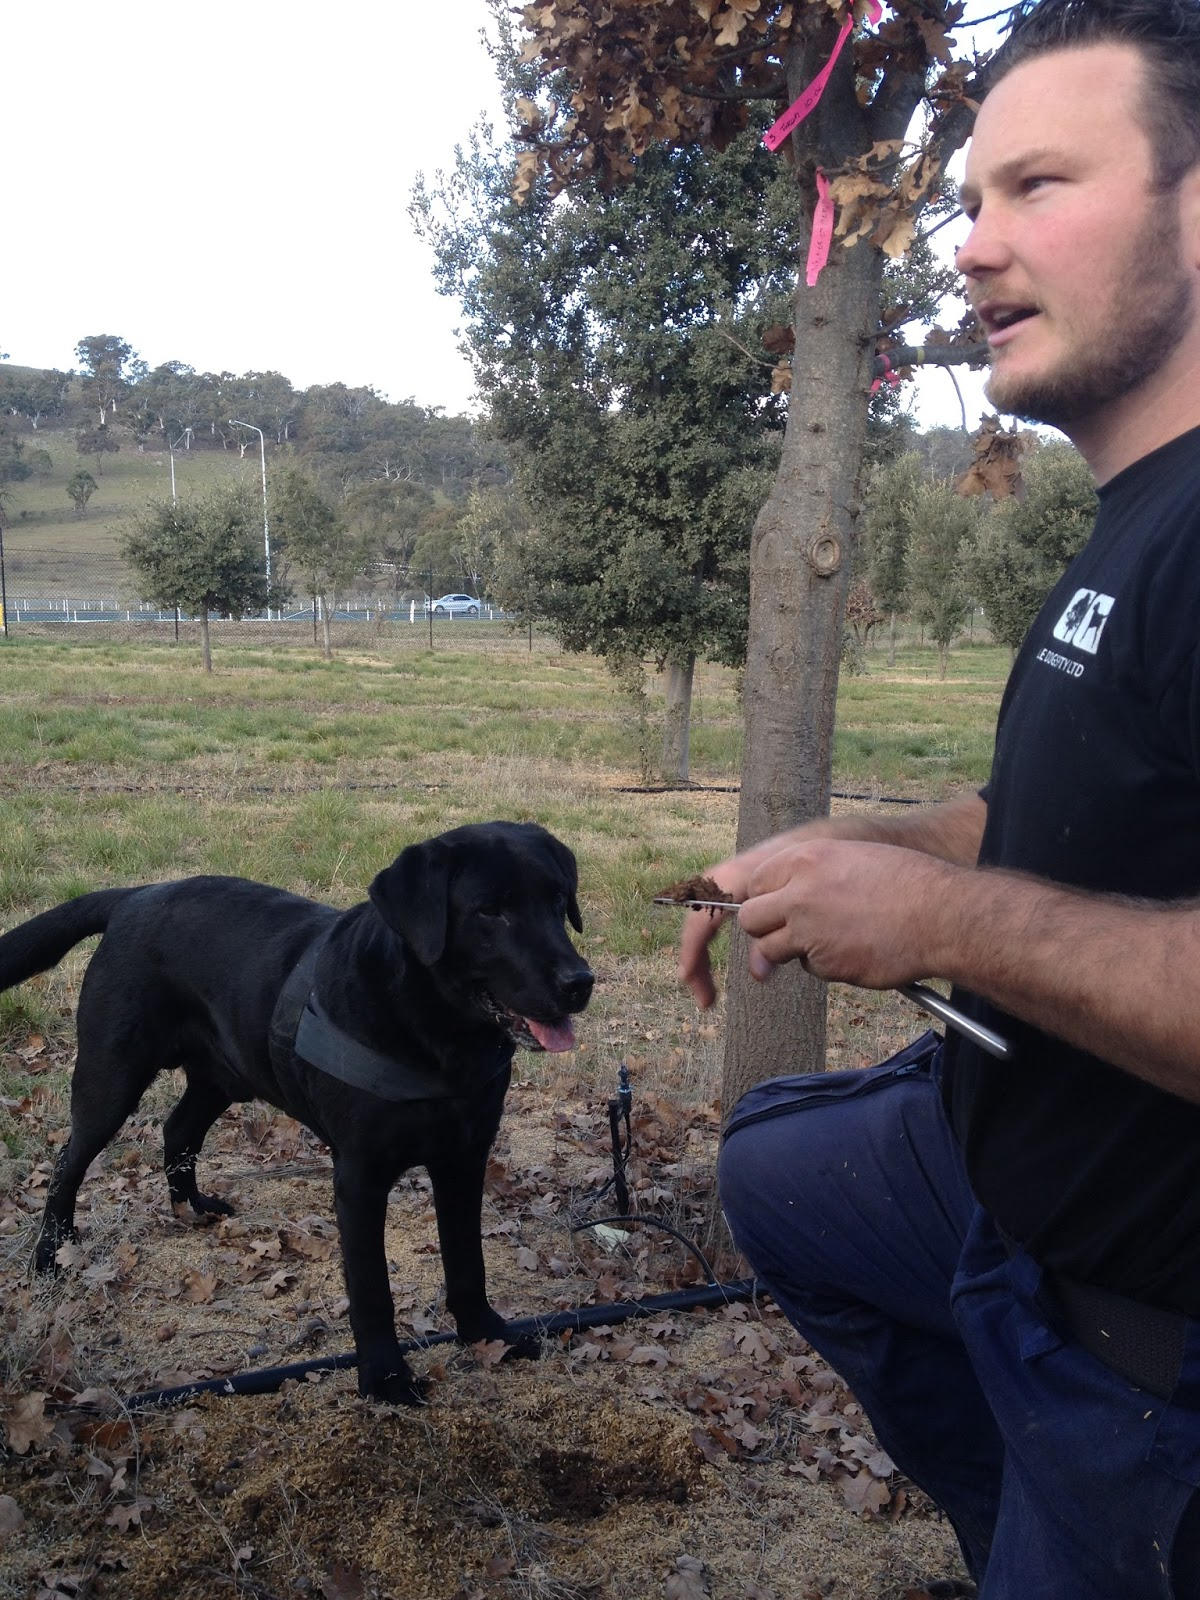 Can Police Dogs Detect Mushrooms